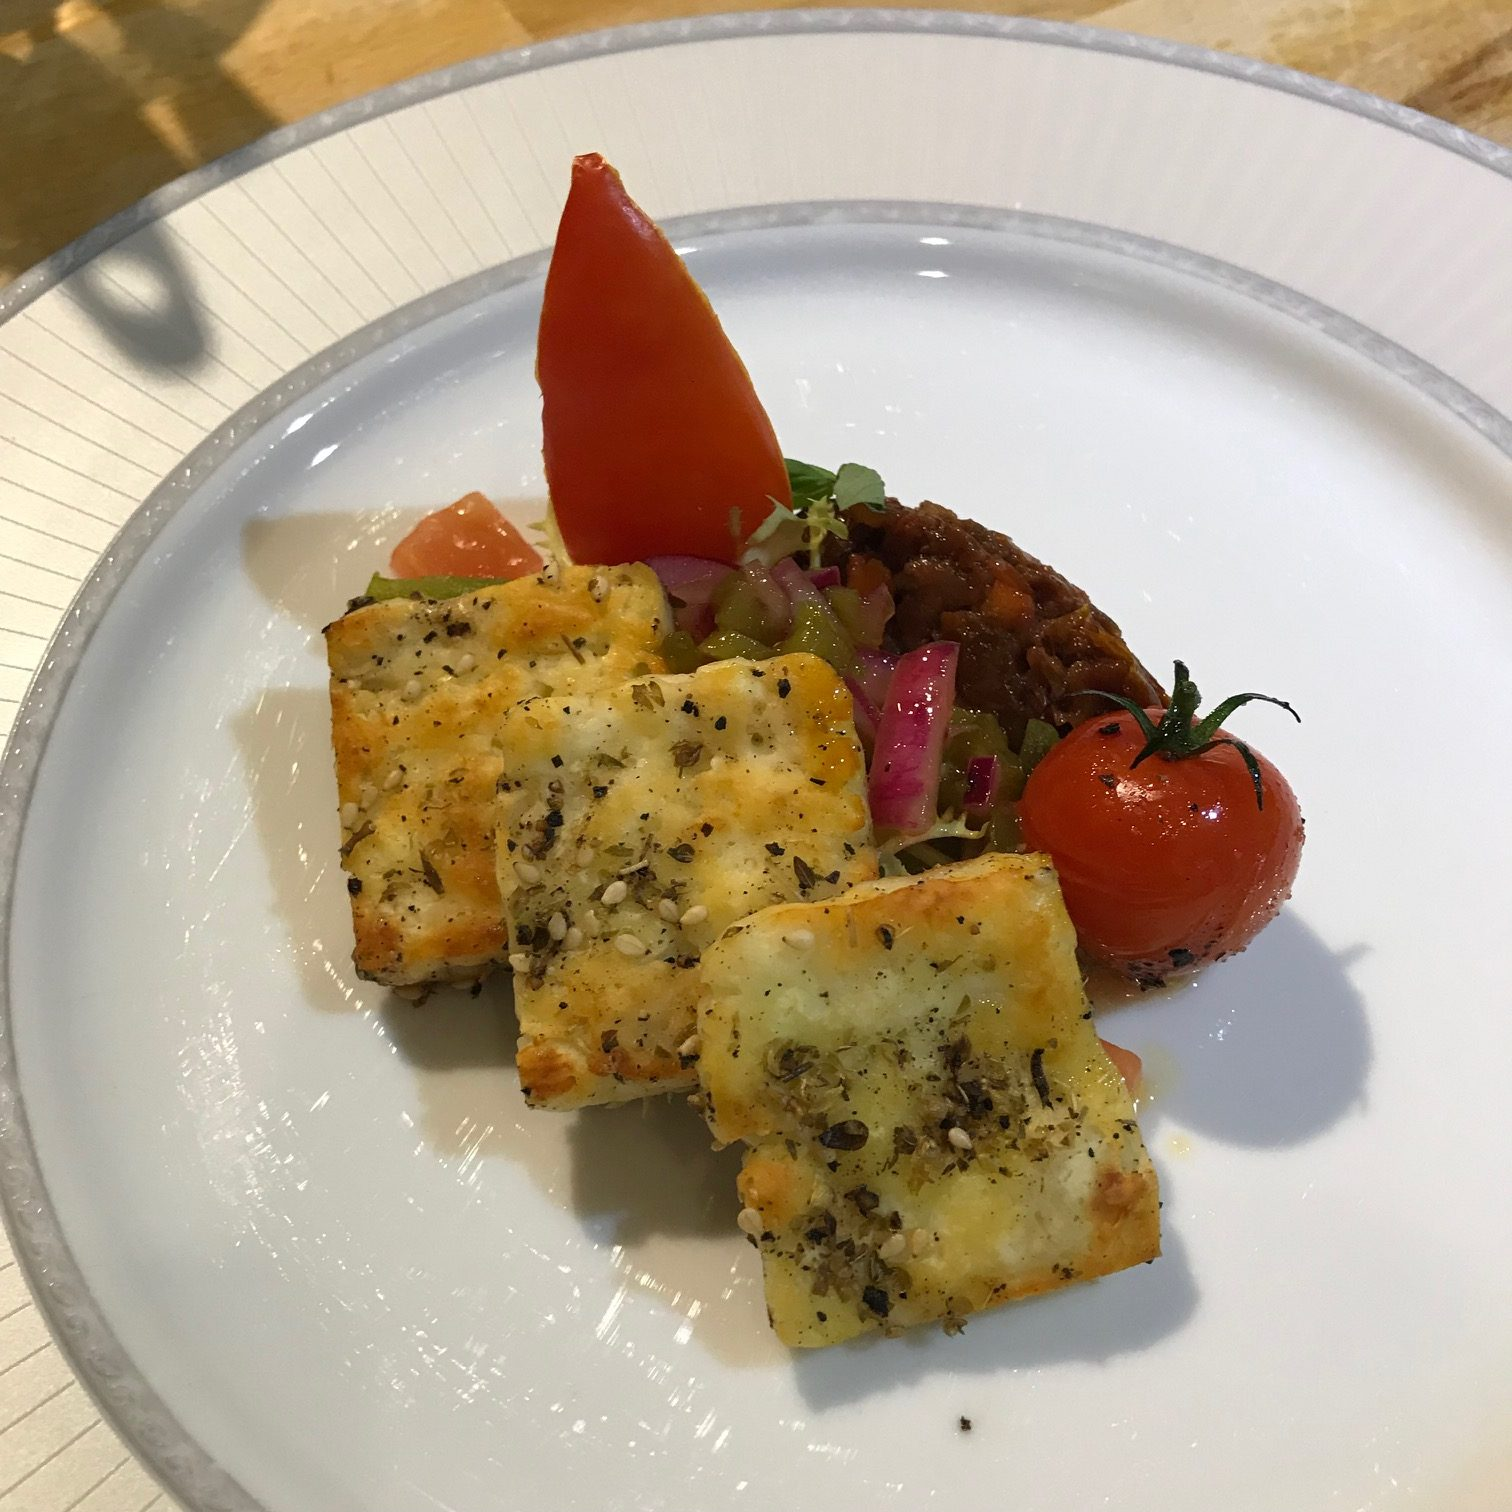 20190923 - Halloumi with Tomatoes, Sweet Peppers & Shallots